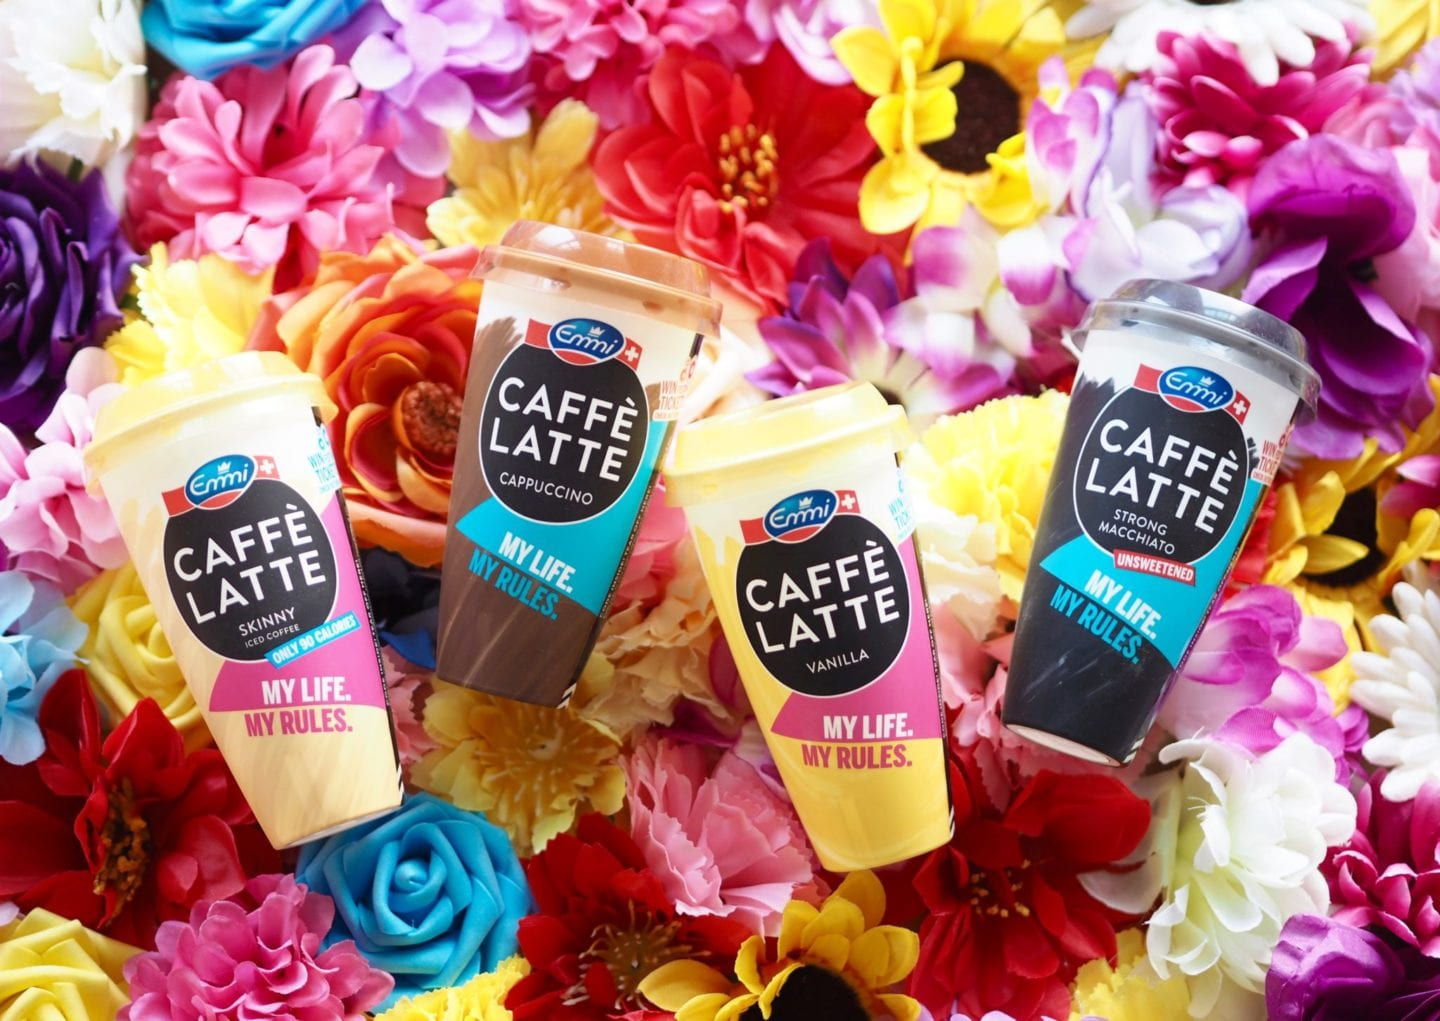 emmi caffe latte coffee win festival tickets